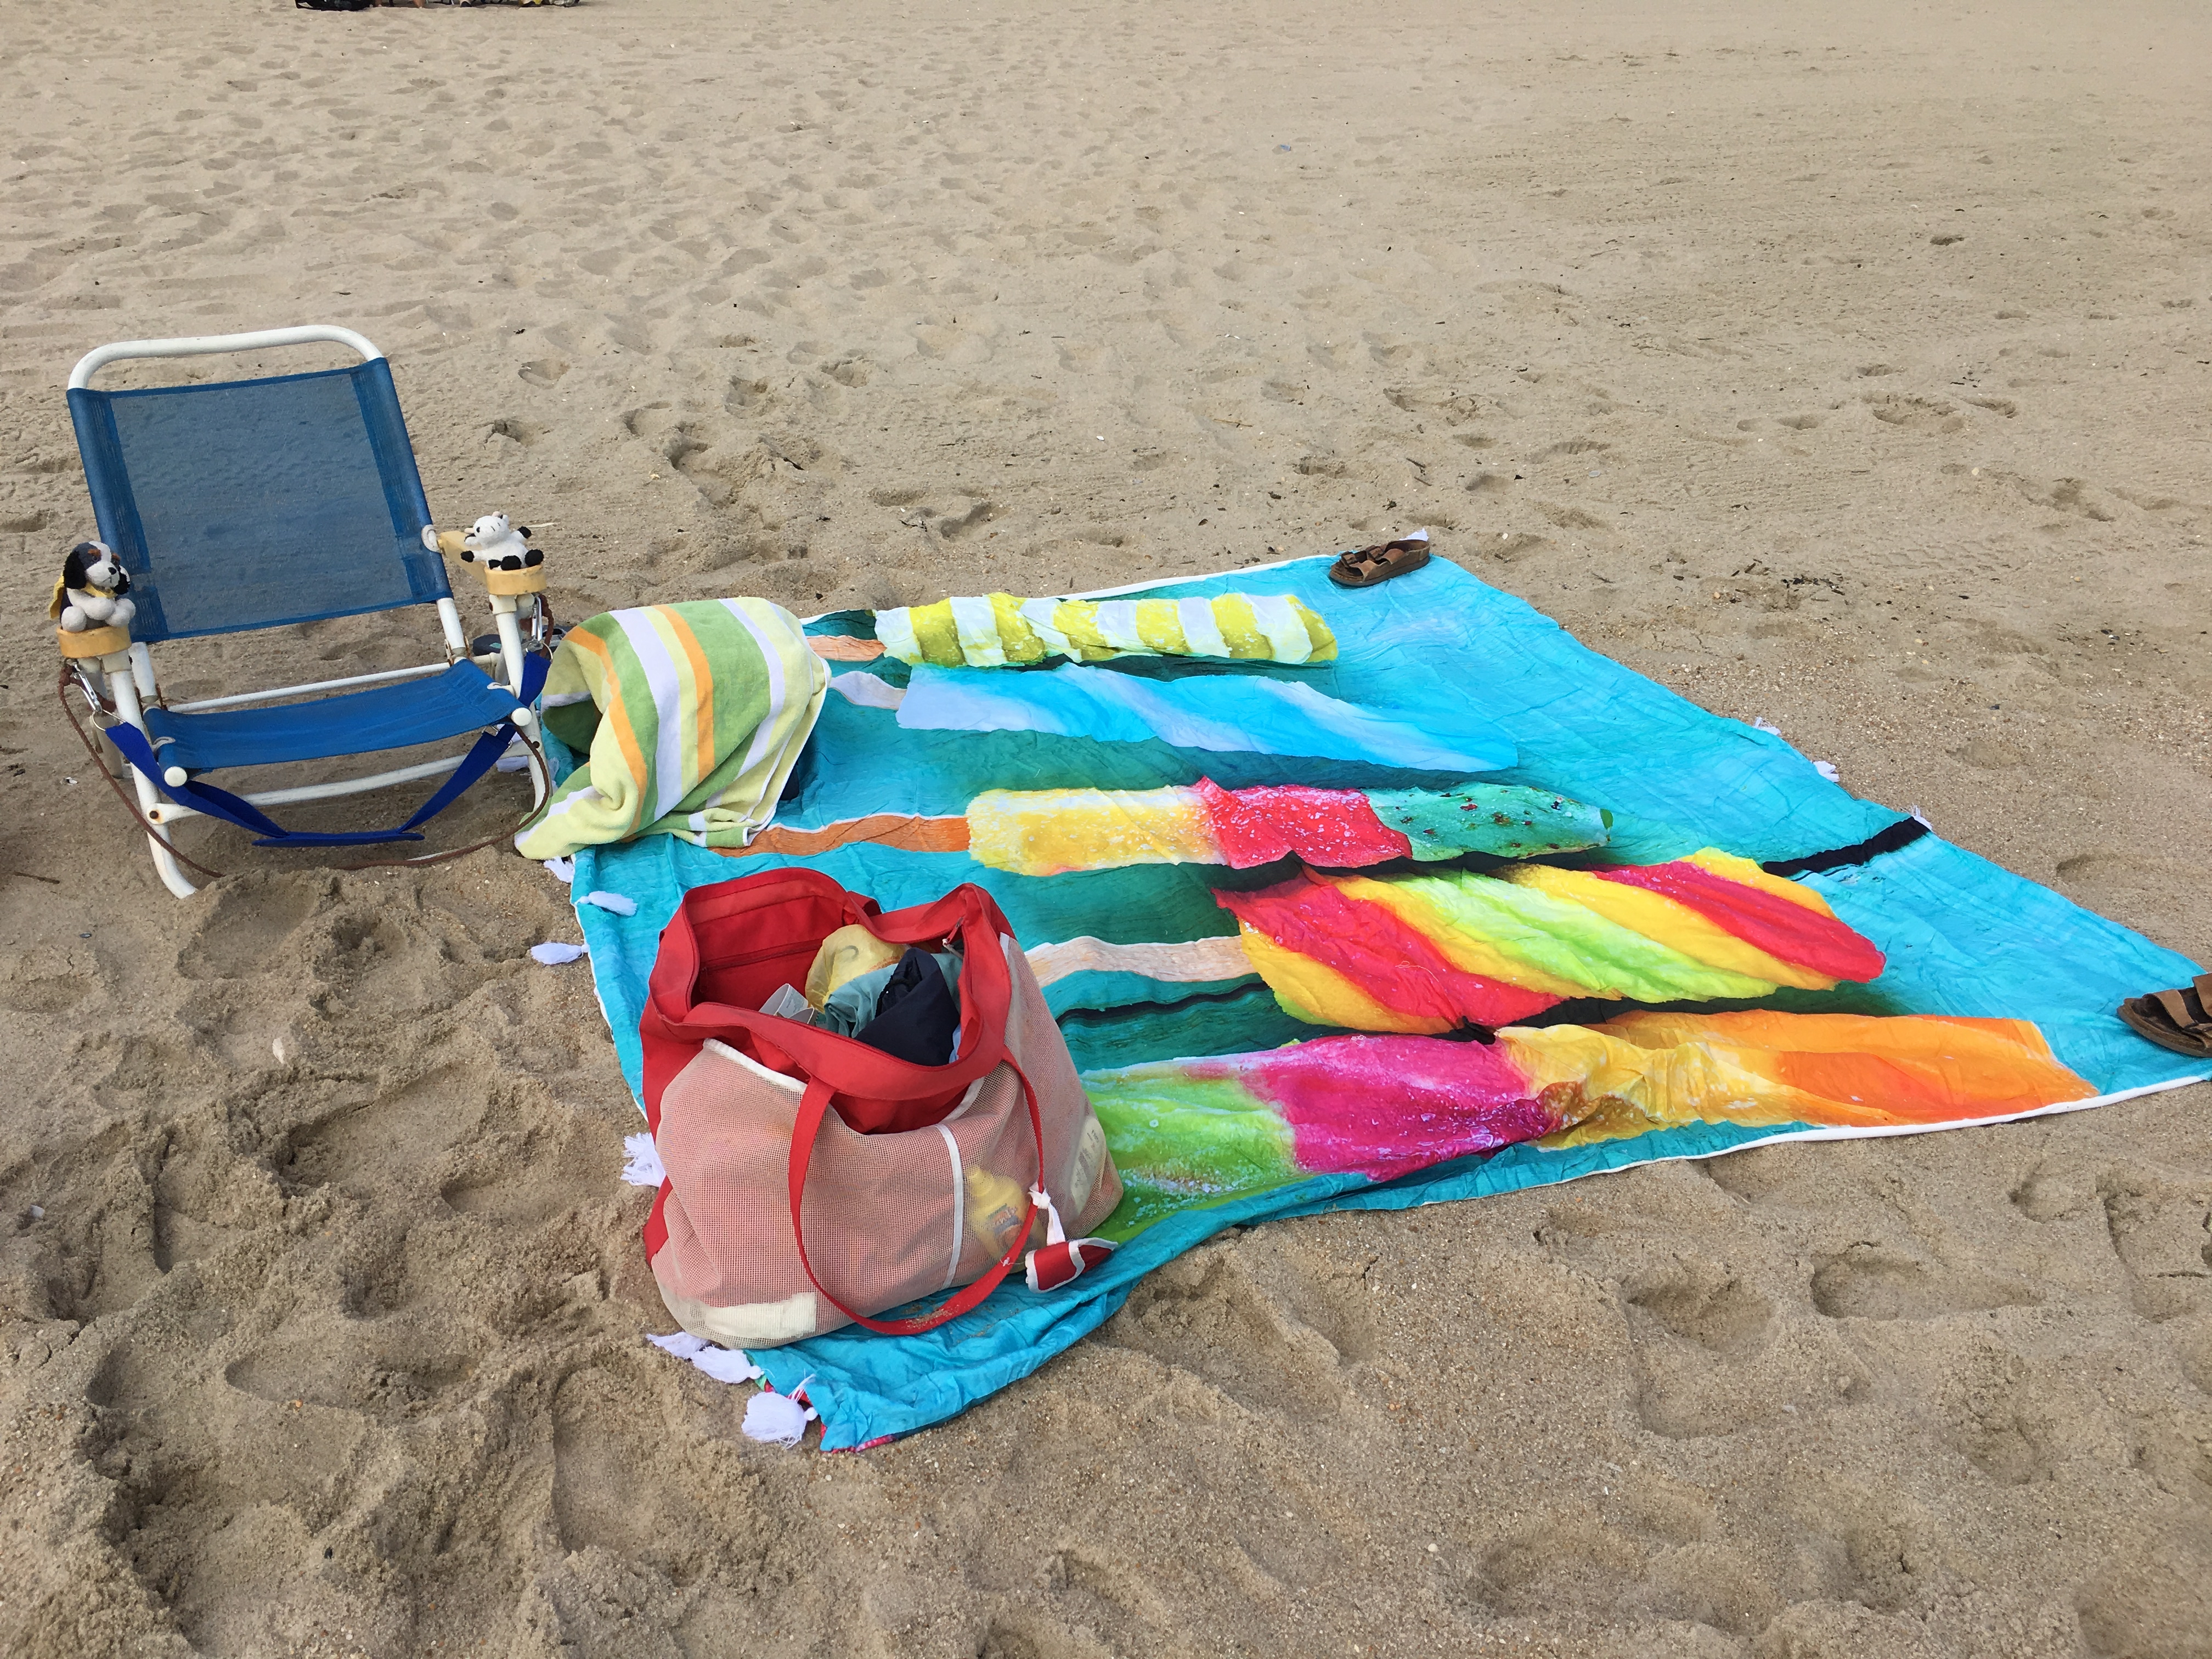 New beach blanket, traditional red bag